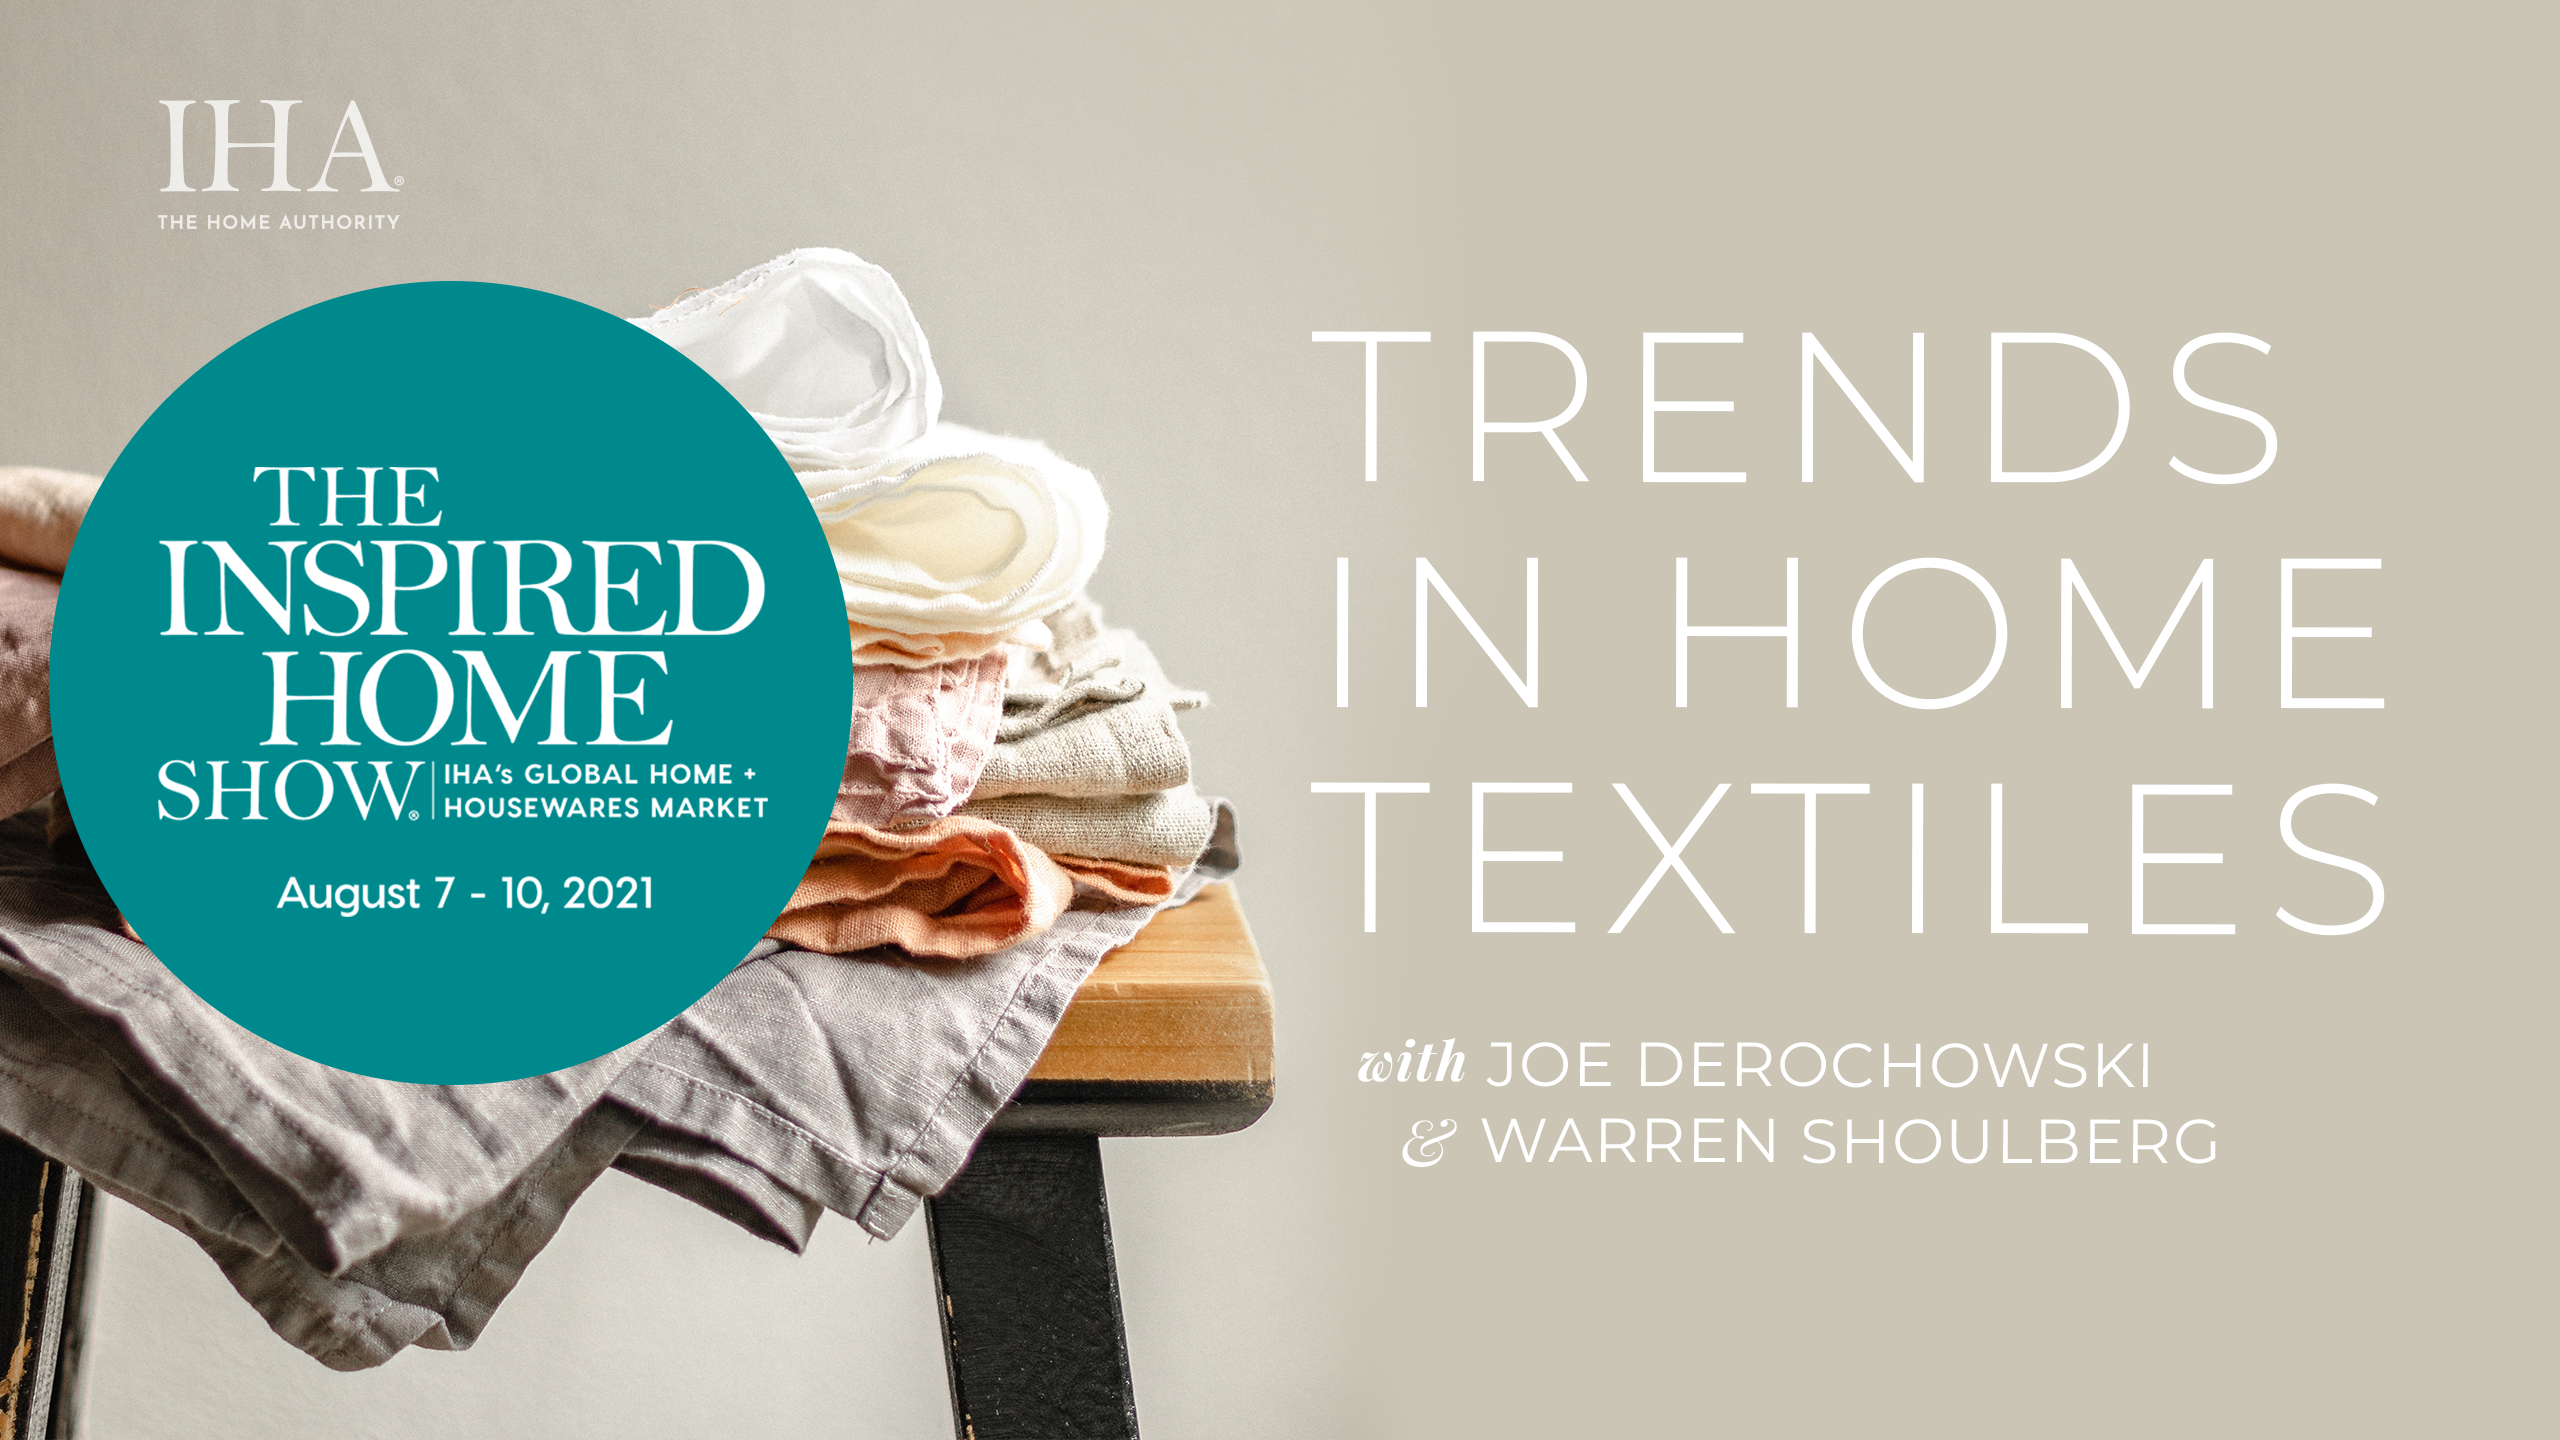 Trends in Home Textiles